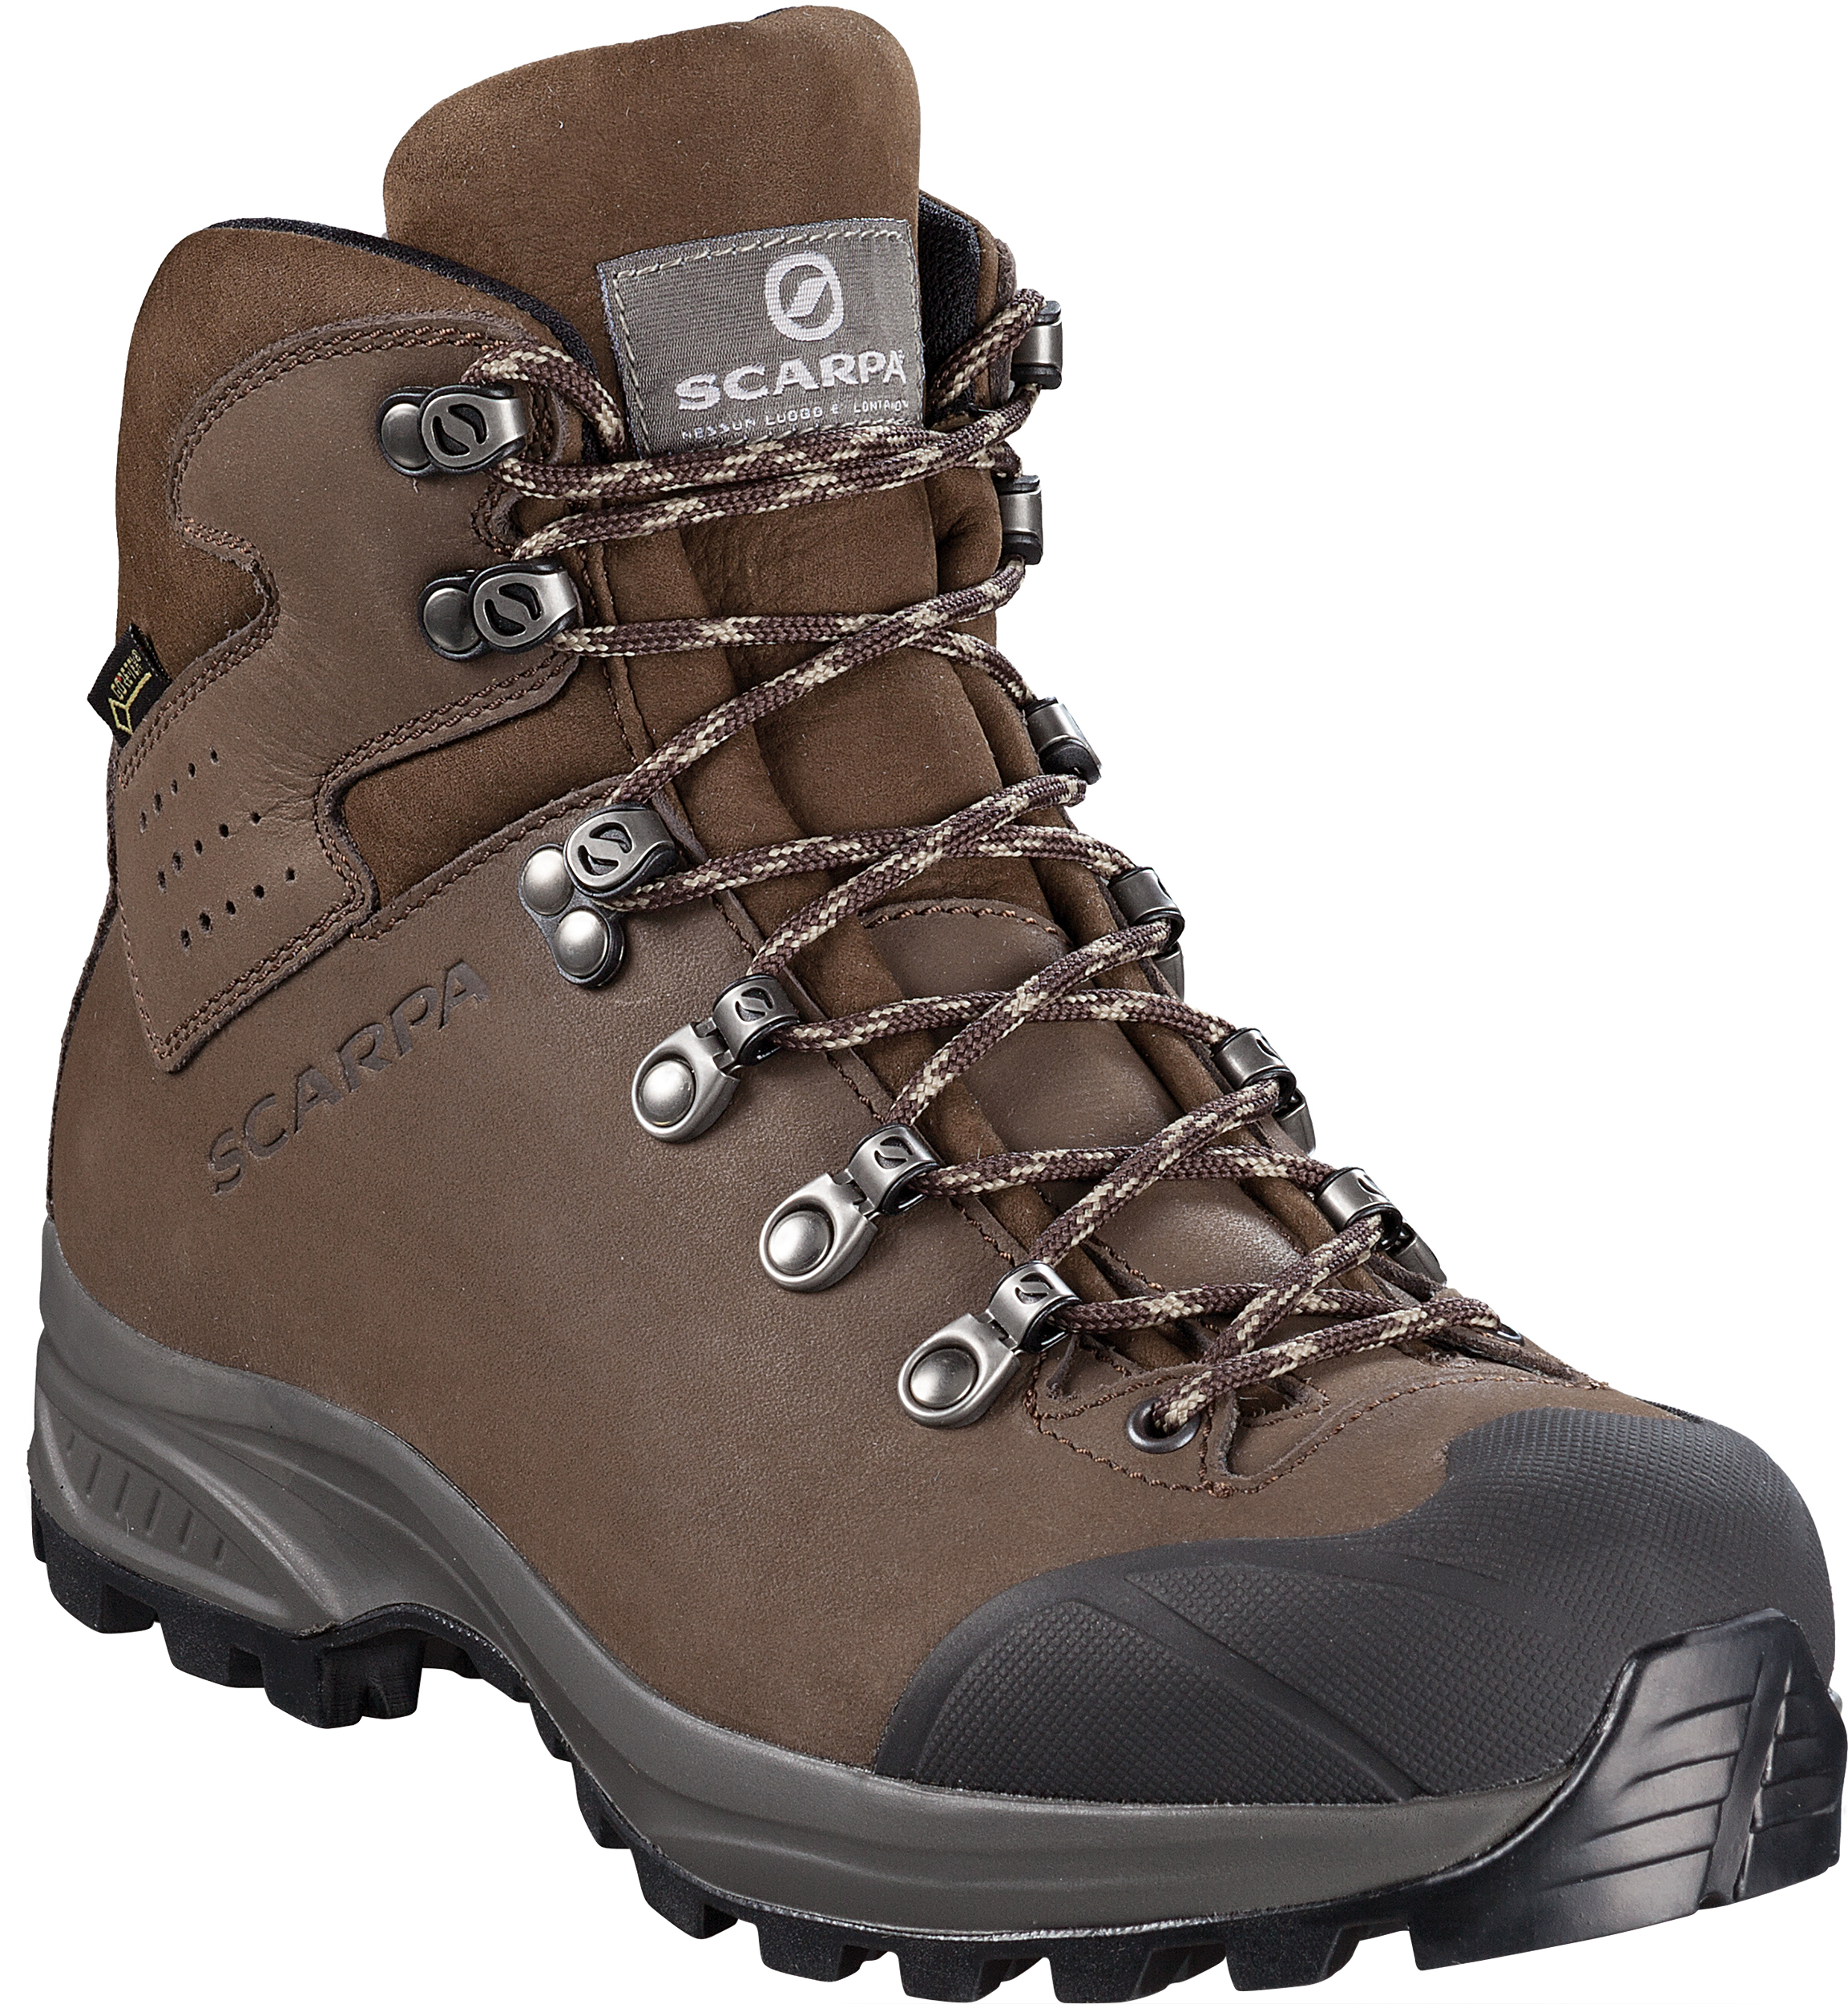 46125261524 Scarpa Kailash Plus GTX Backpacking Boots - Women's